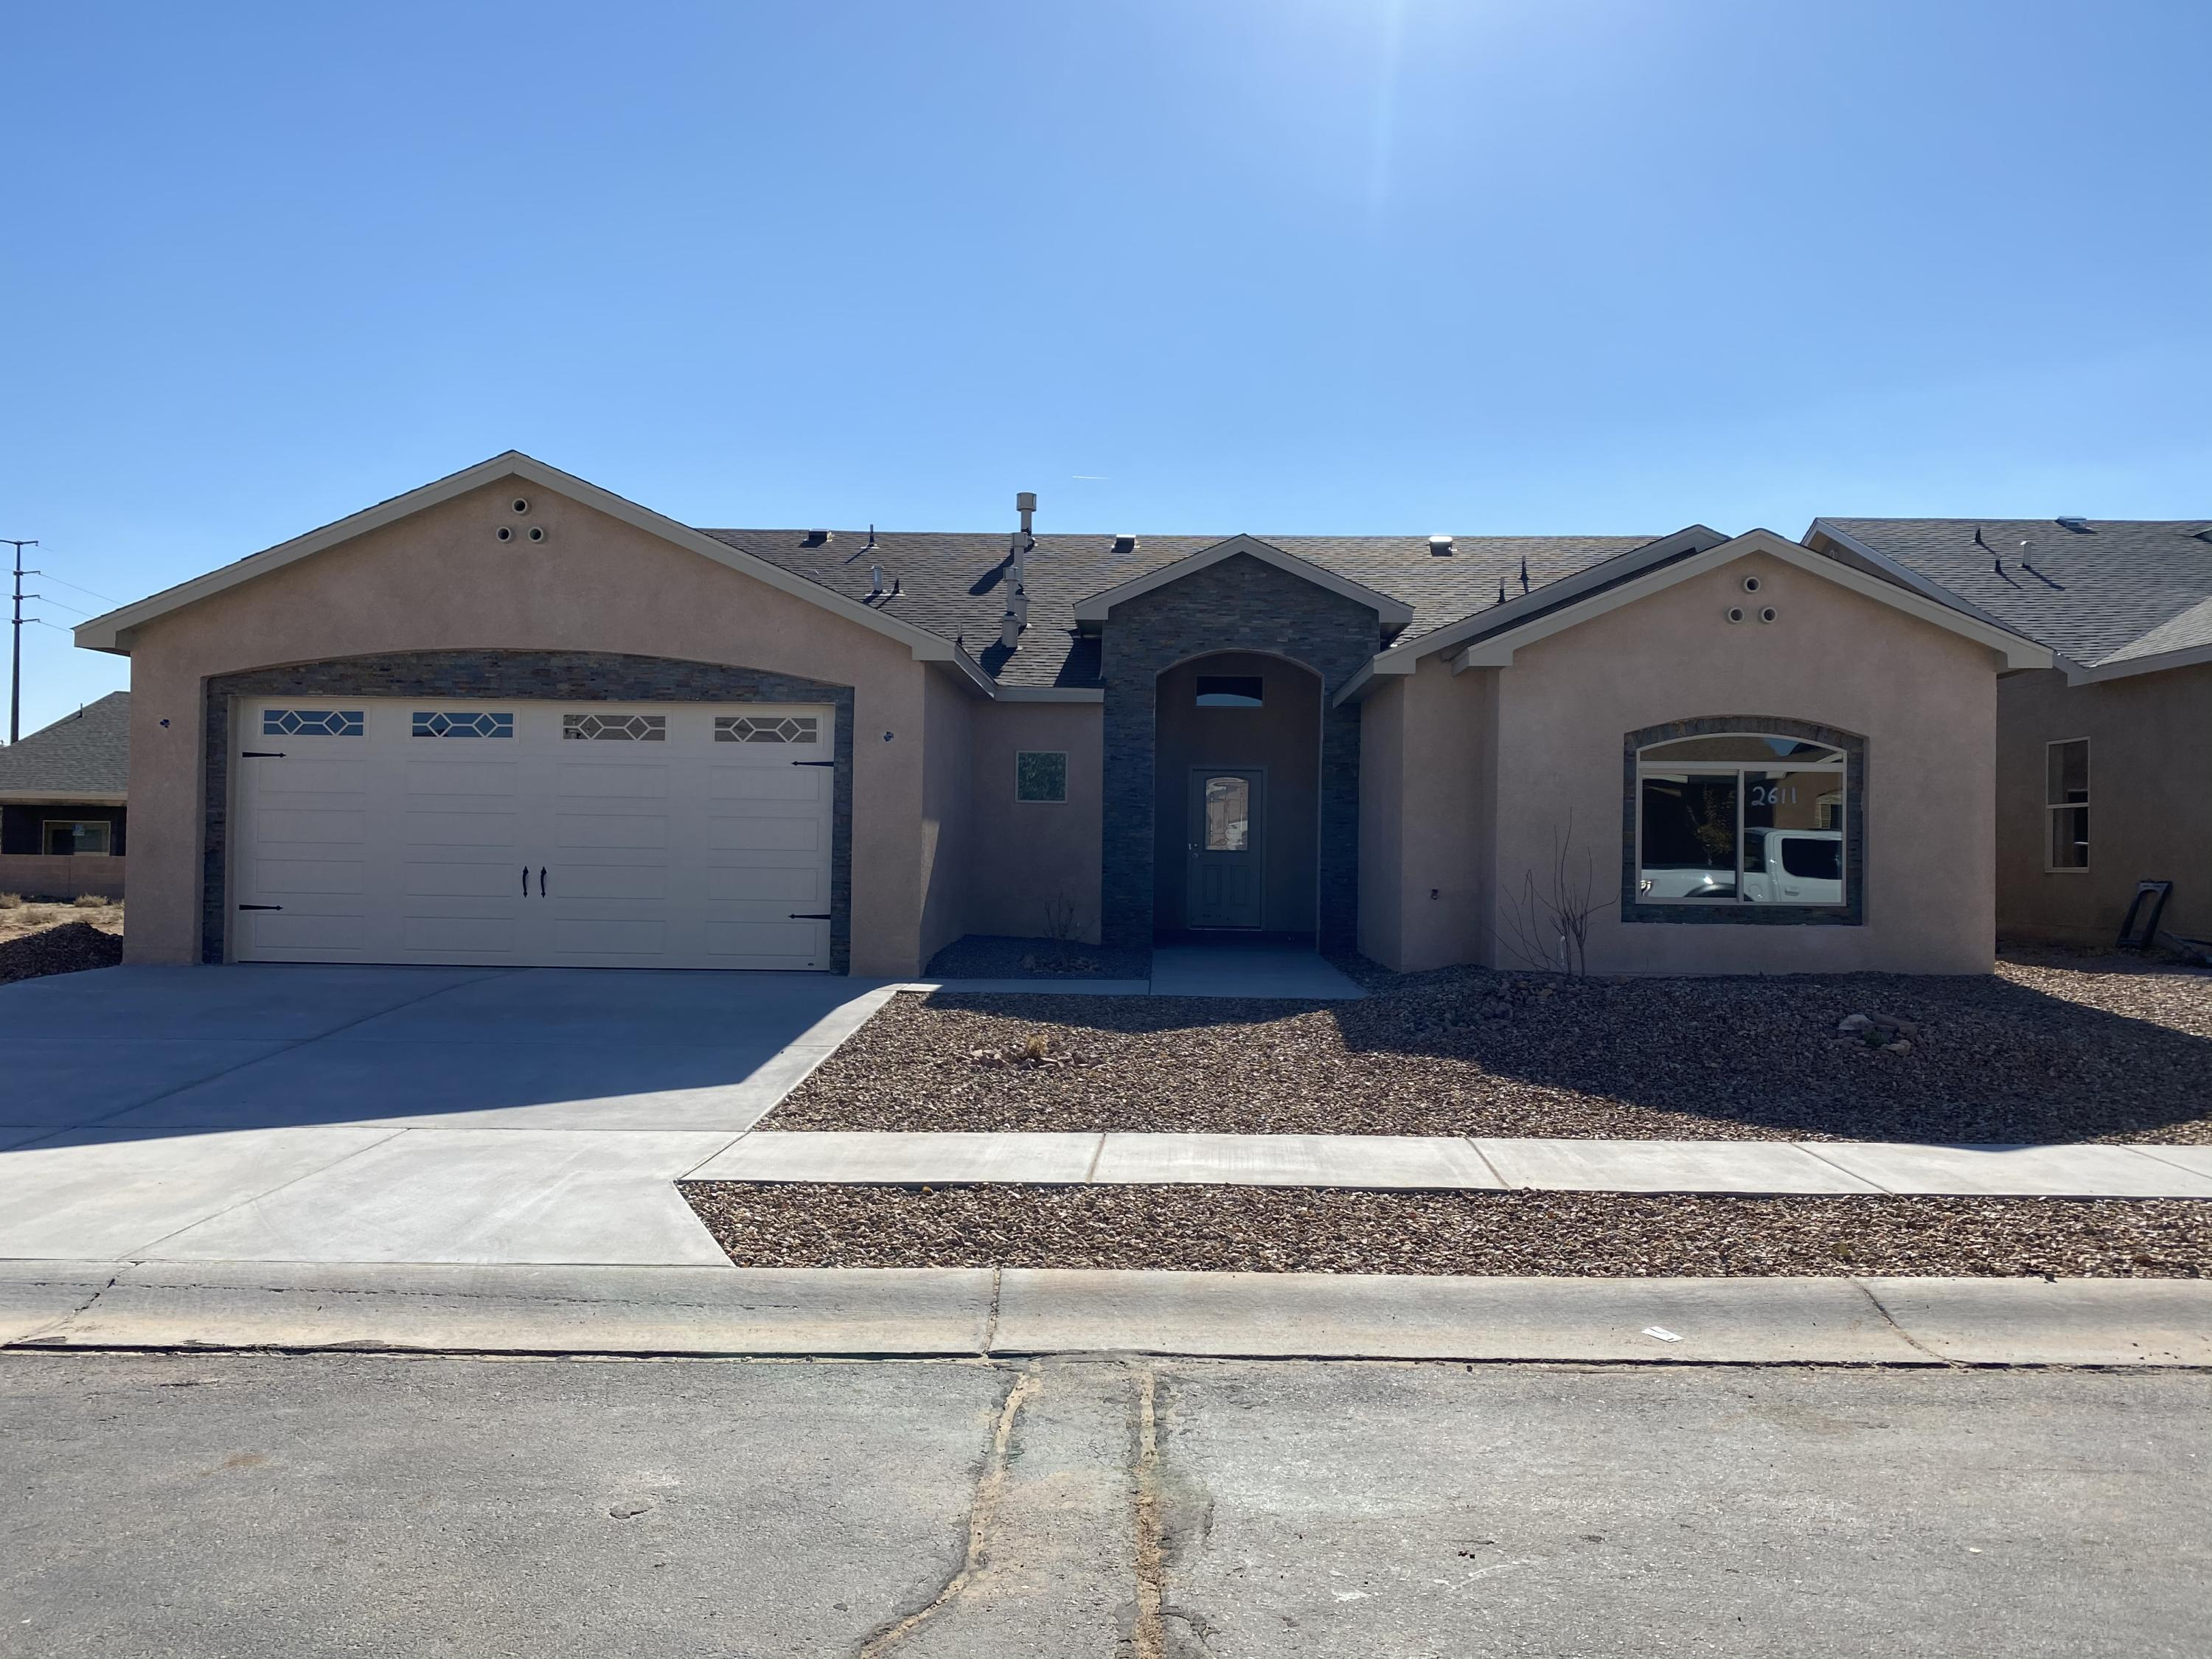 Newly completed custom home Kaladine Floor plan in the Wild Flower gated community. Easy on and off Freeway I-25 for the commuter. Home built on a Guaranteed Post Tension Slab. Home boasts of many upgraded features w/ an open floor plan with vaulted ceiling including stacked stone accents on the interior and exterior. Open Kitchen with Granite counter tops, decorative tile back splash, custom cabinets, stainless steel/black appliances and large pantry. Family Room with Gas log fireplace. Master suite with Large walk in closet. 2 other large rooms w/ large closets. Plenty of room in the 2 car finished garage with openers. Covered back patio to relax. Don't delay, make an appointment to view this beautiful home today! Home comes w/ one year builders warranty and 10 yr post tension slab wrnty